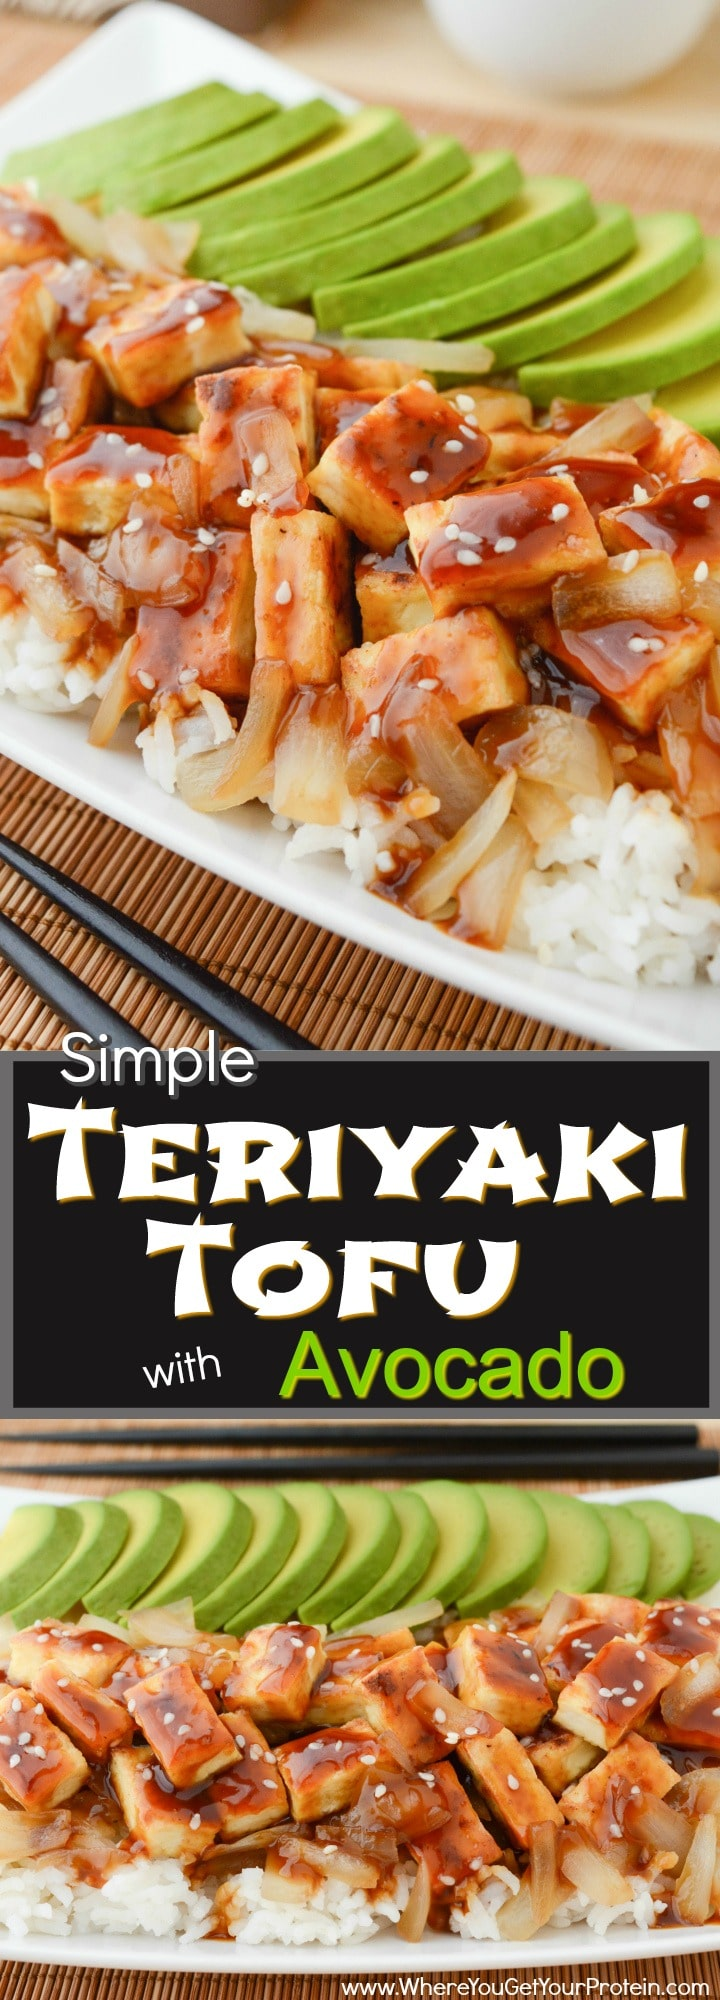 Simple Teriyaki Tofu with Avocado is a quick and easy dinner, or a filling lunch! A soft bed of organic white basmati rice is piled high with caramelized onions and oven baked tofu. It's then drizzled with a salty-sweet teriyaki sauce and topped with a buttery ripe avocado! Vegan & Gluten-free